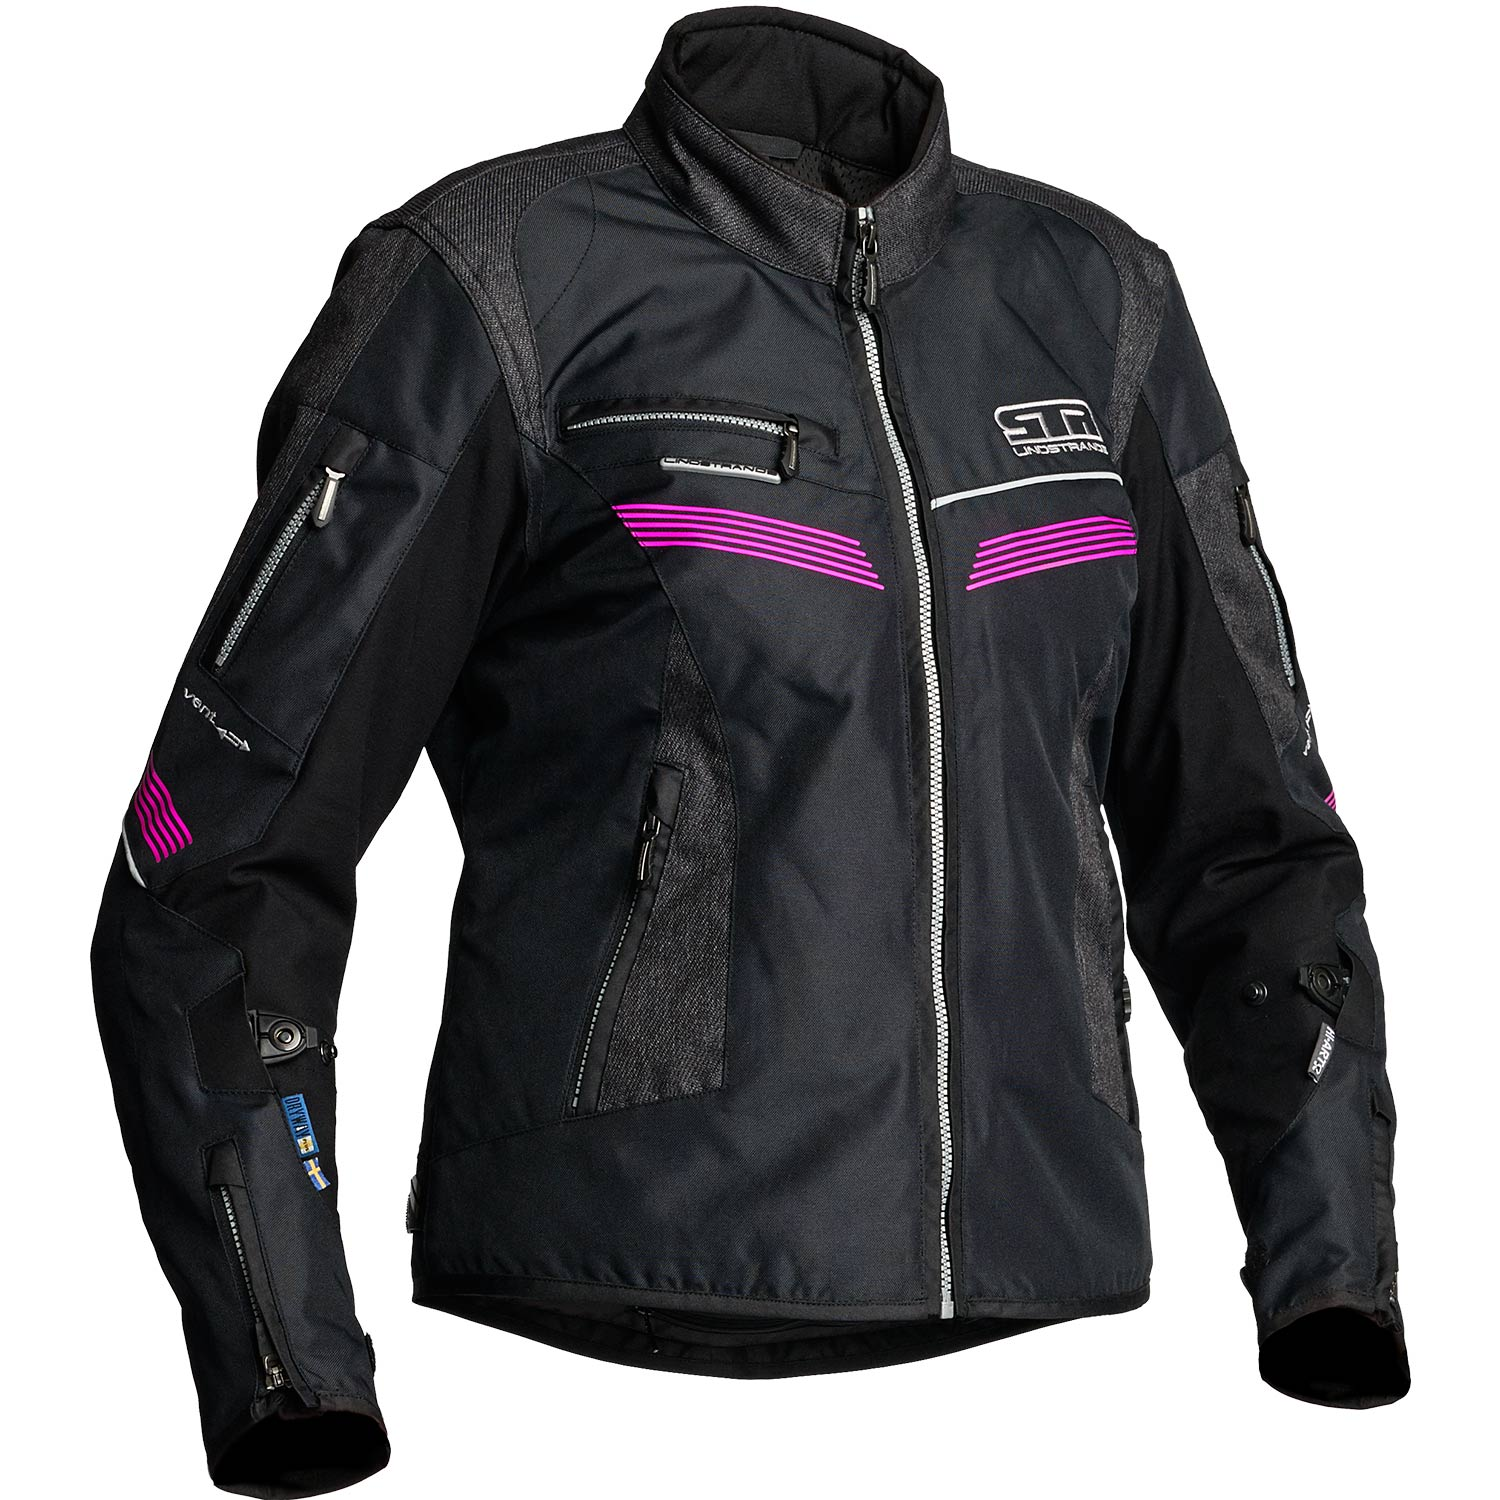 Moto Ce Lindstrands Mujer Chaqueta Negro Zhiva Impermeable Aa AqX0A